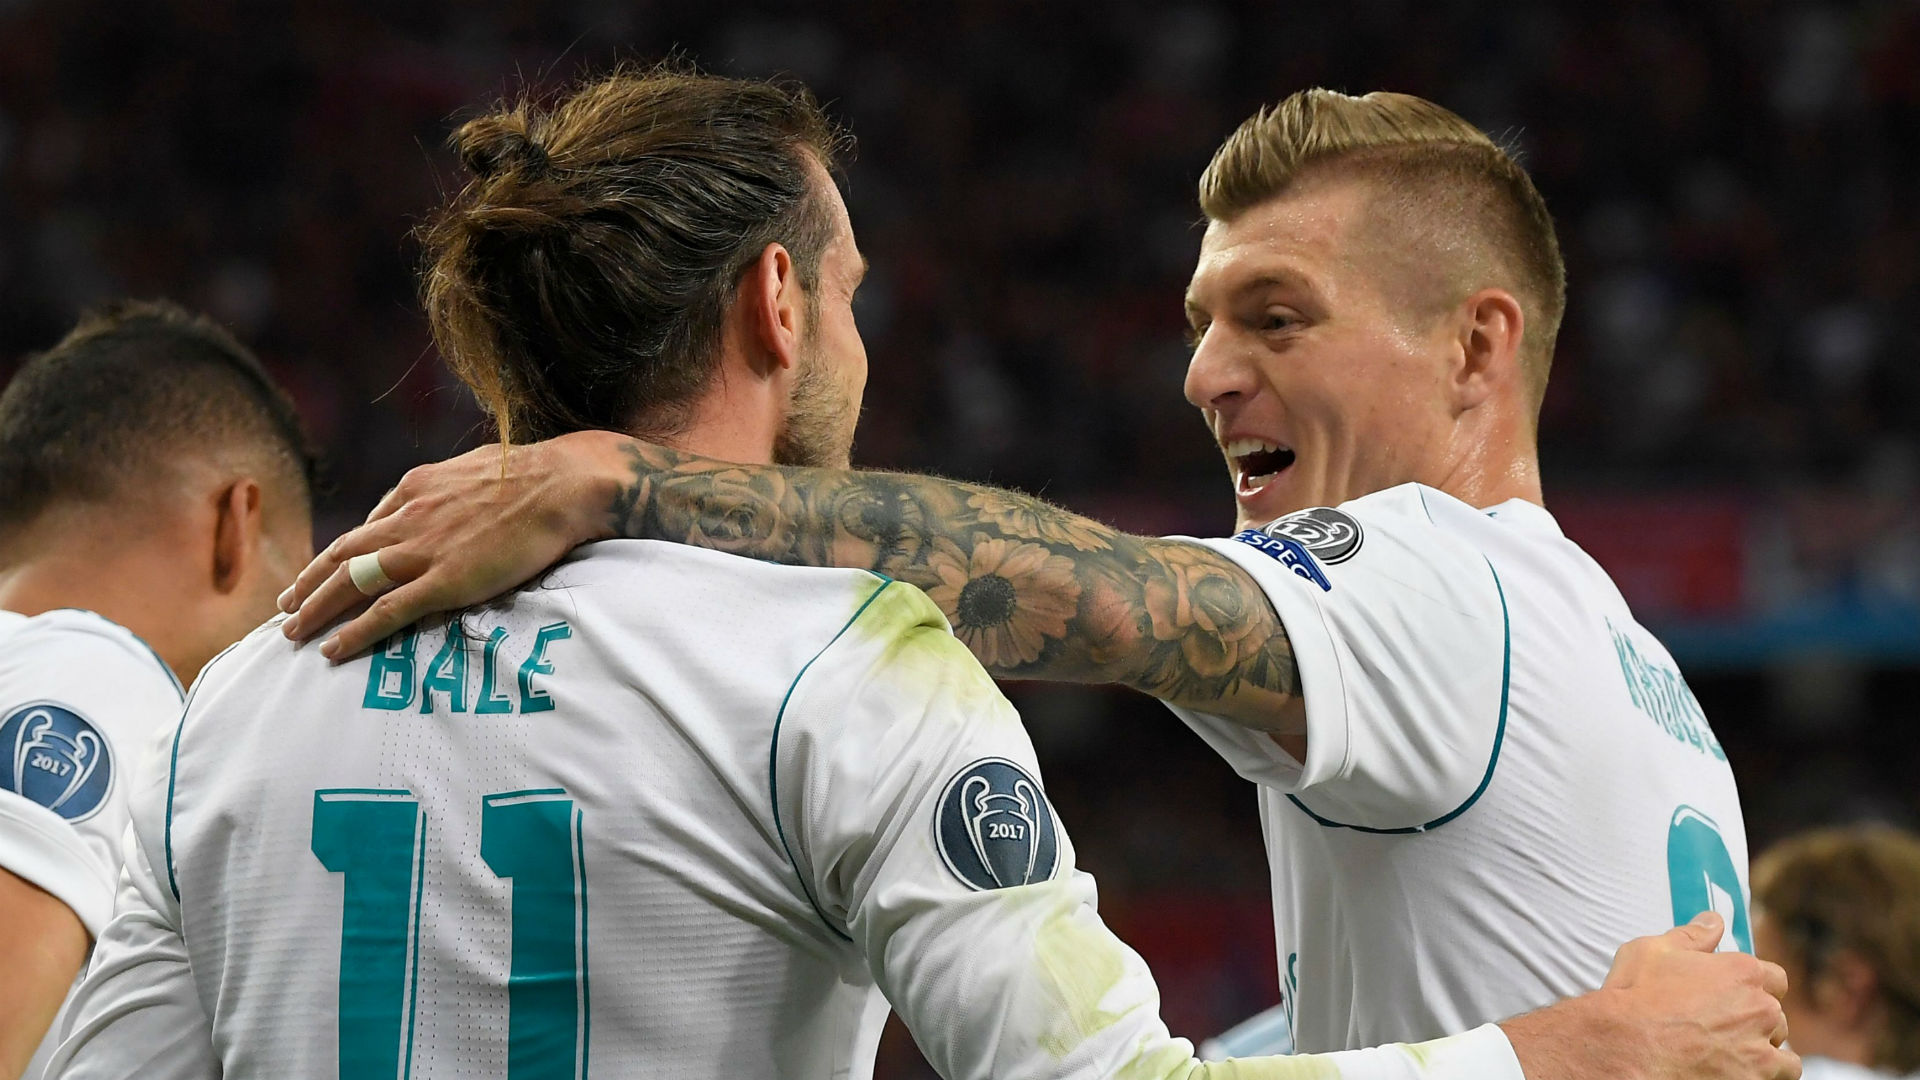 Bale transfer talk leaves Kroos in the dark as Real Madrid team-mate questions Wales availability